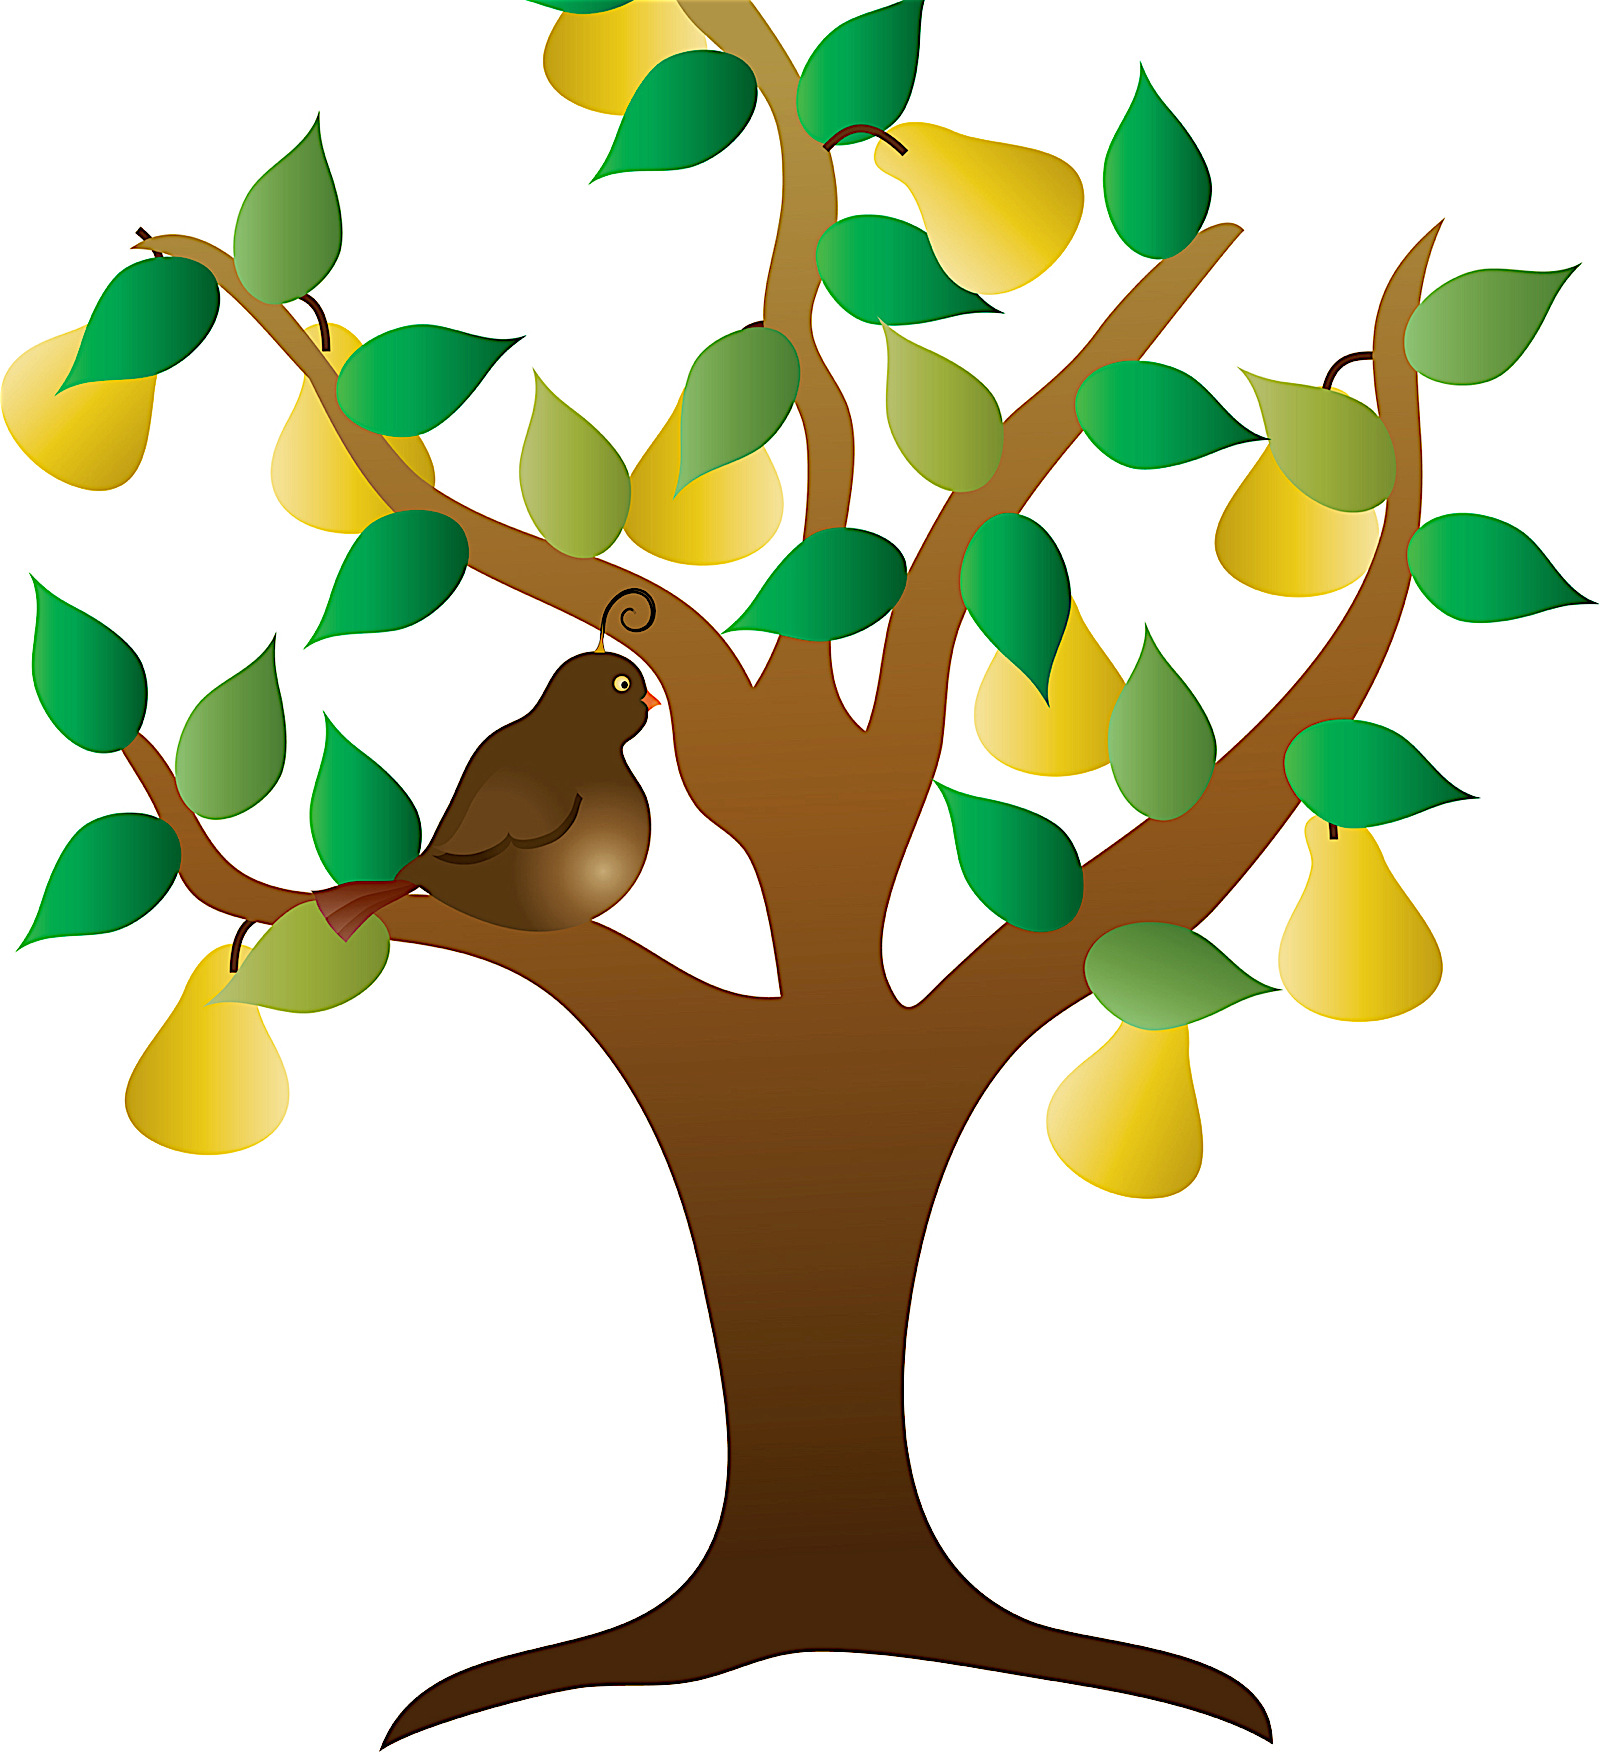 hight resolution of  days of christmas song color illustration of a stylized tree with yellow pears and green leaves and a brown partridge